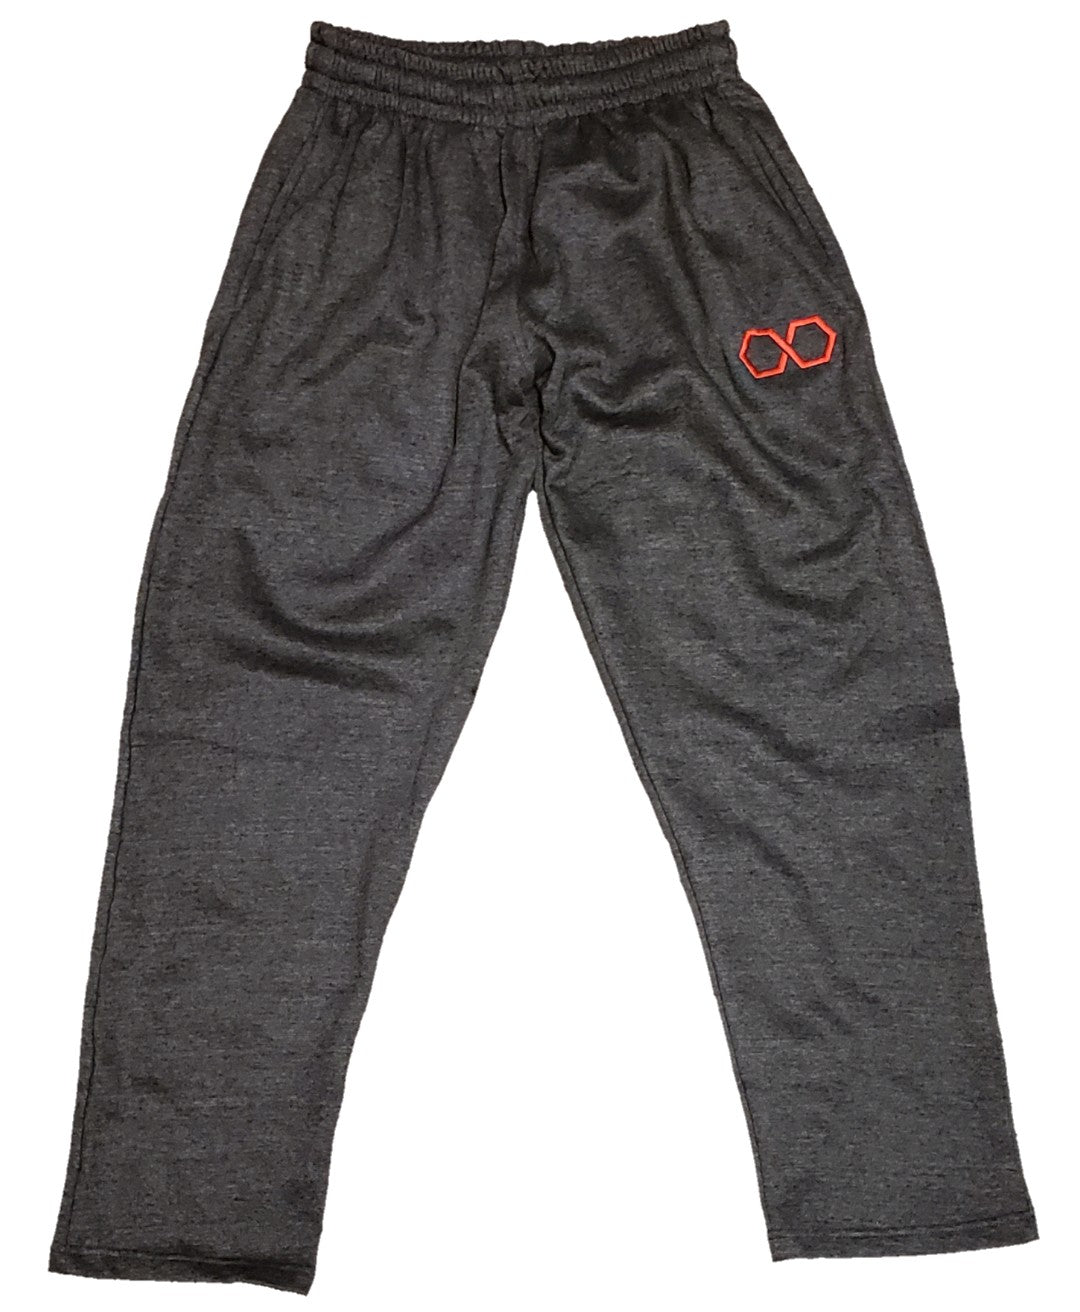 Infinite Elgintensity charcoal grey sweatpants (flat)